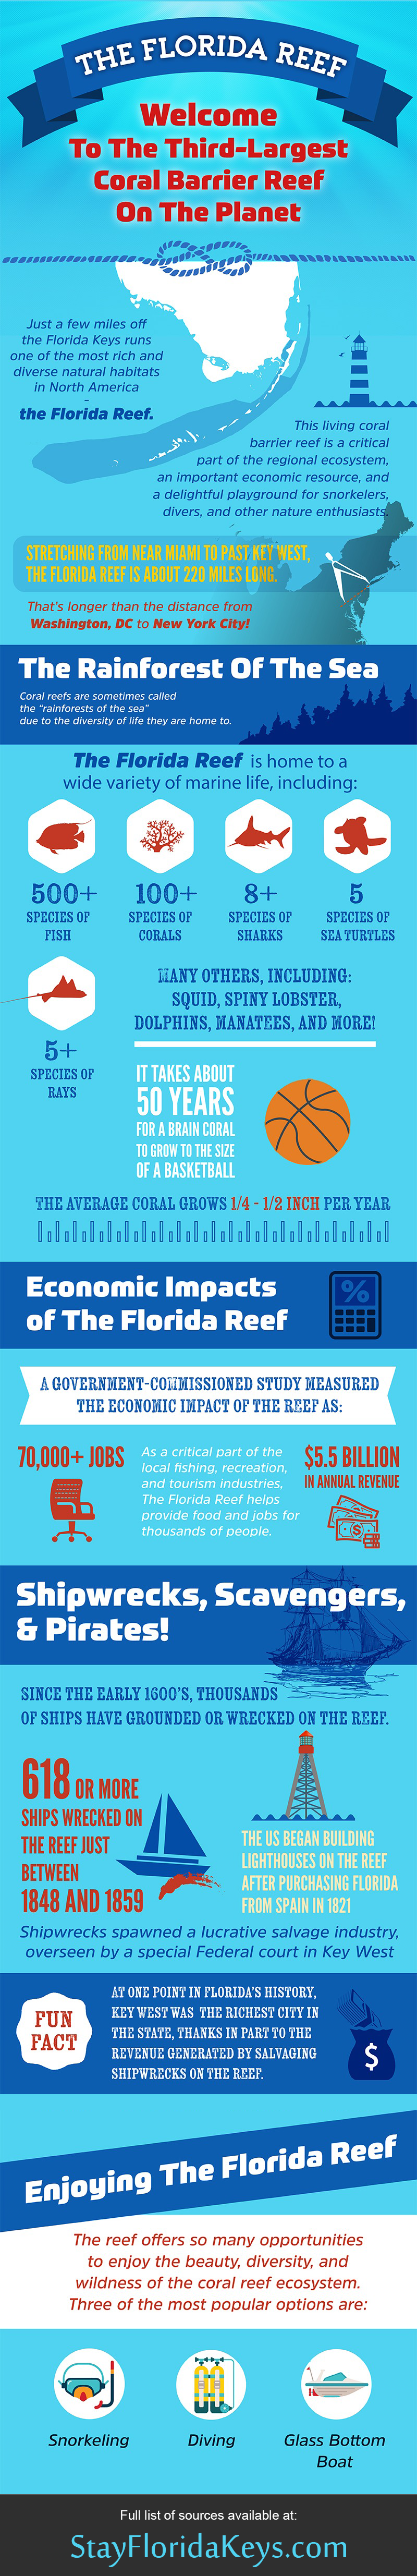 The Florida Reef